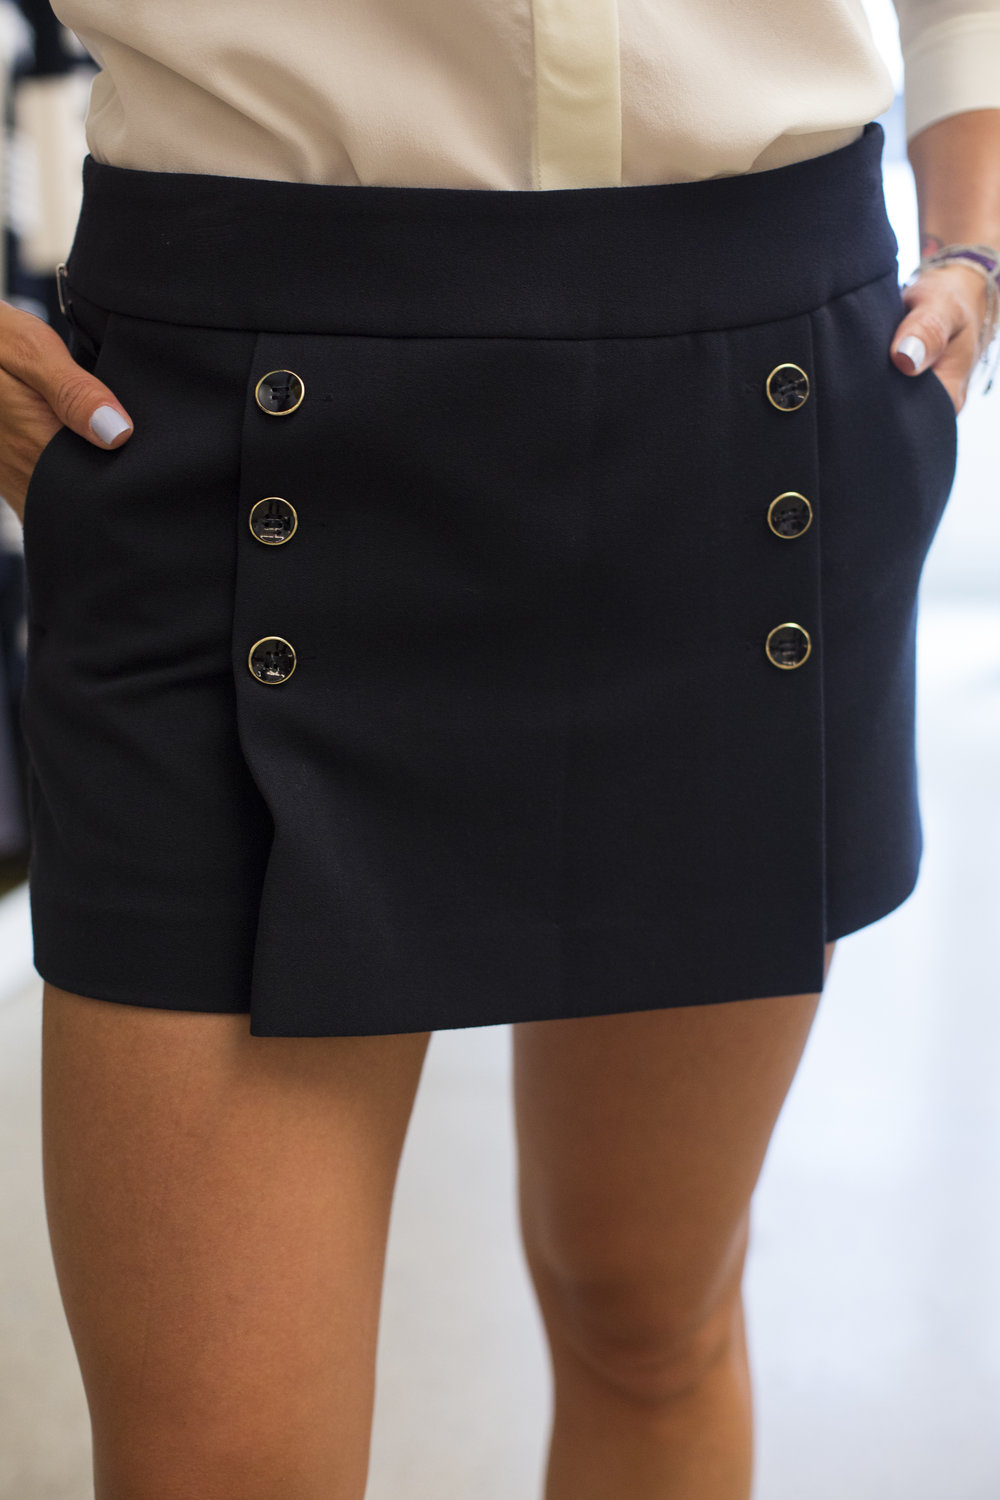 The nautical skort is such a great look, so many ideas on how to style! I'm on the waiting list for this...